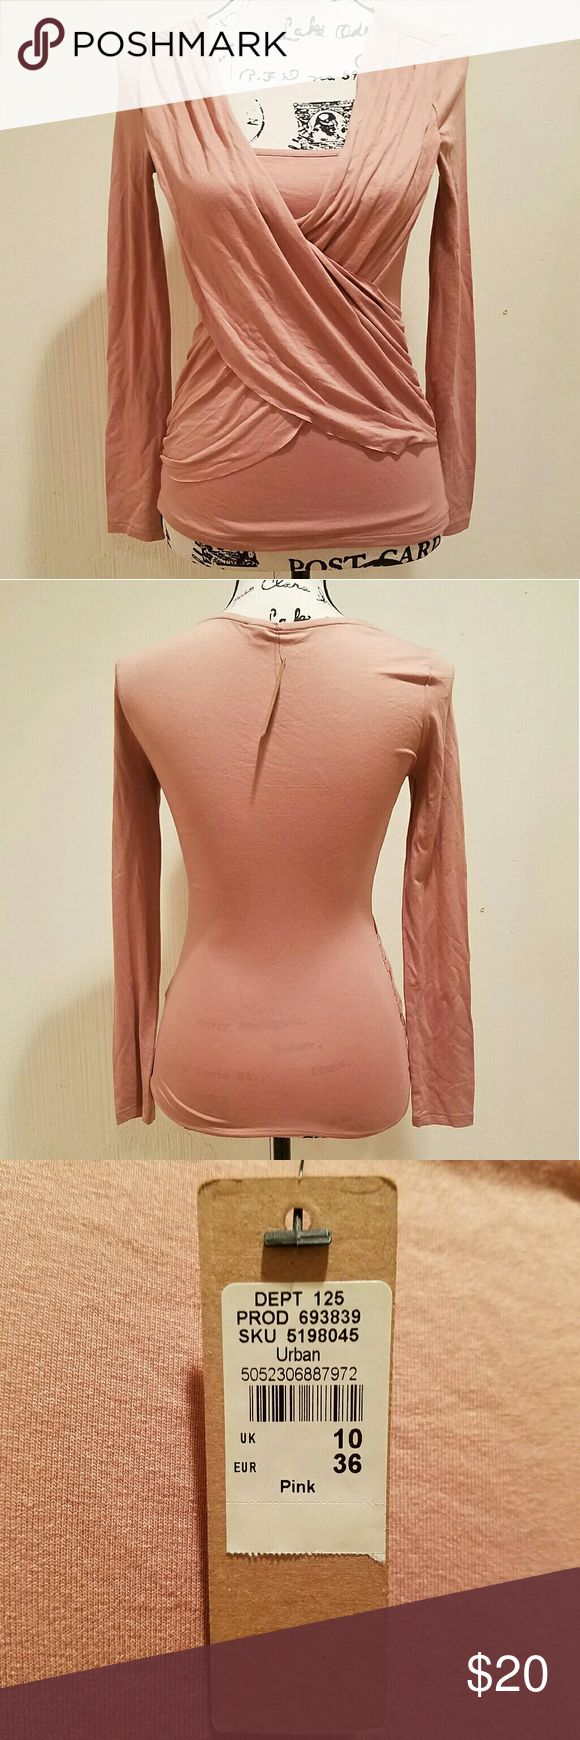 River Island pink ruched wrap top Gorgeous pink color, ruched wrap front with fitted top underlayer. Long sleeve. Size is UK 10 which translates to US 6 (and Eur 36). Brand new. River Island Tops